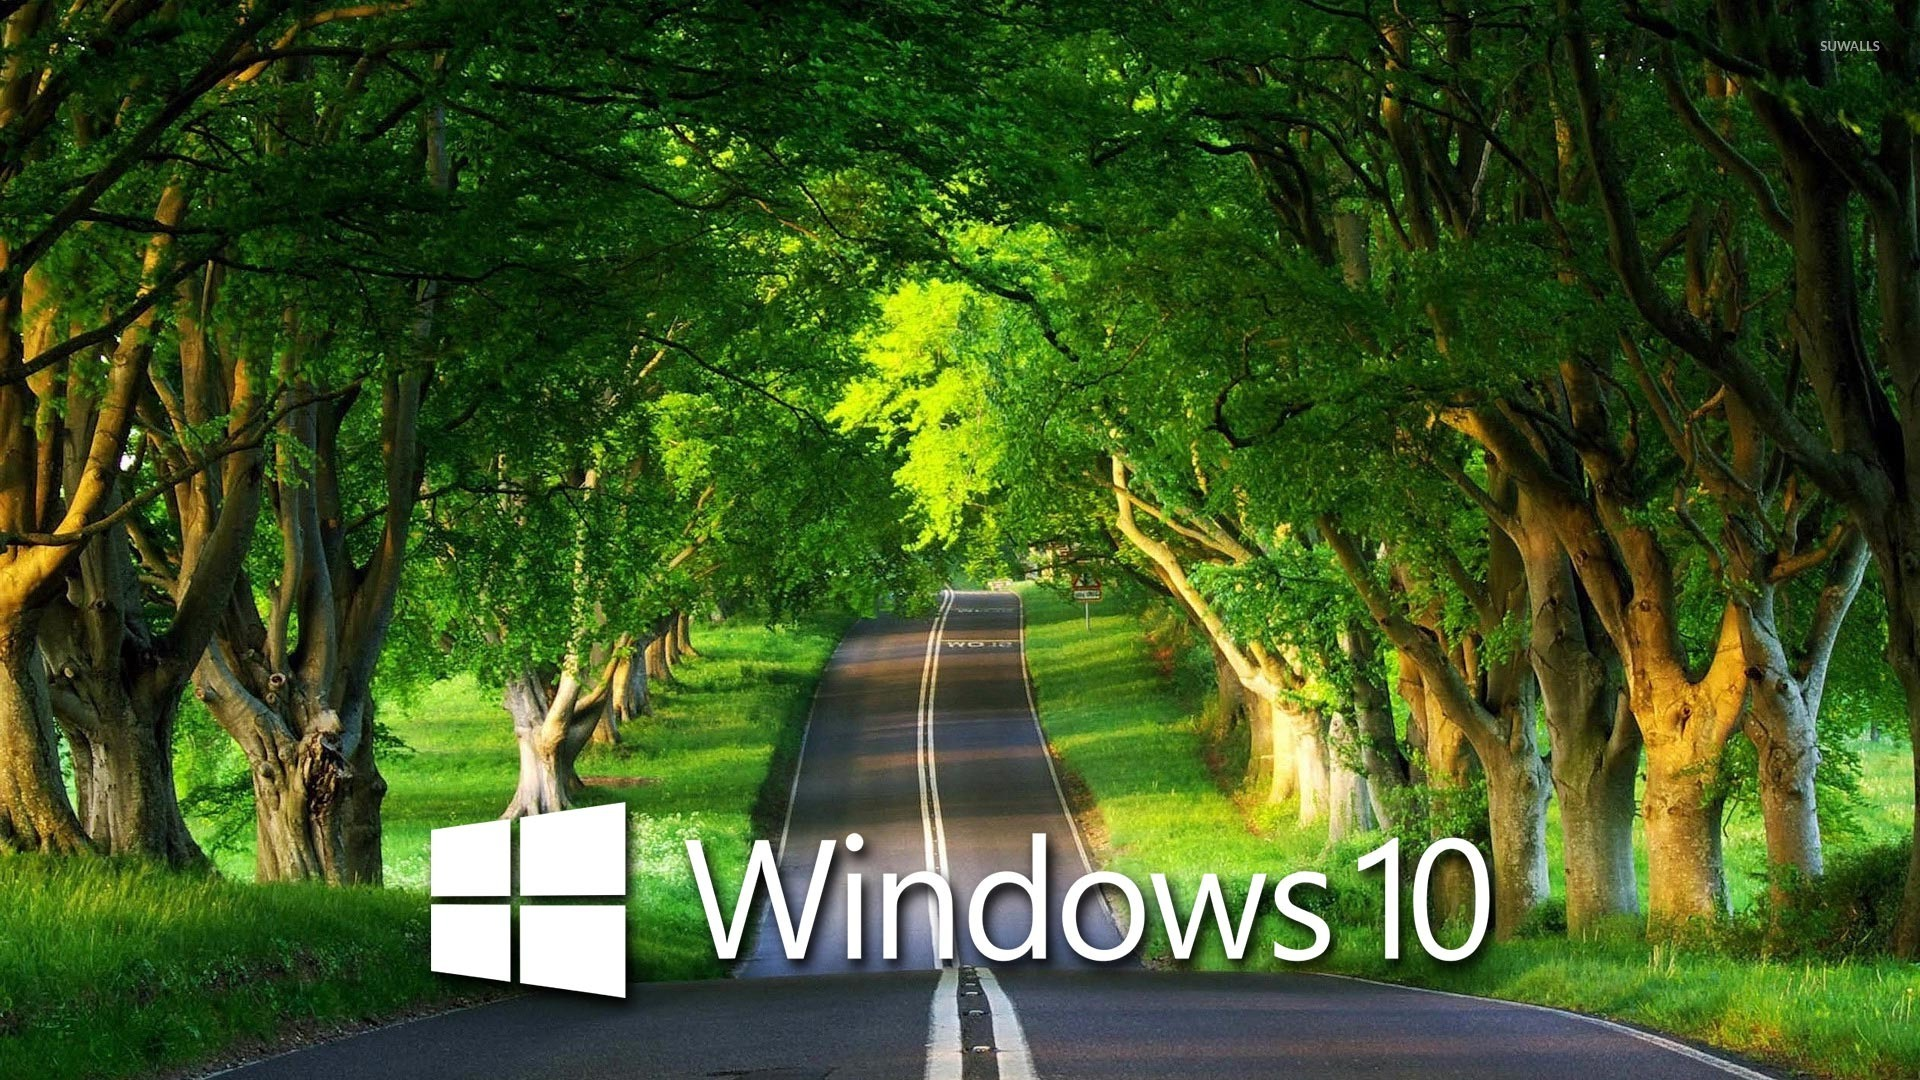 Windows 10 Over The Country Road 4 Wallpaper Computer Wallpapers